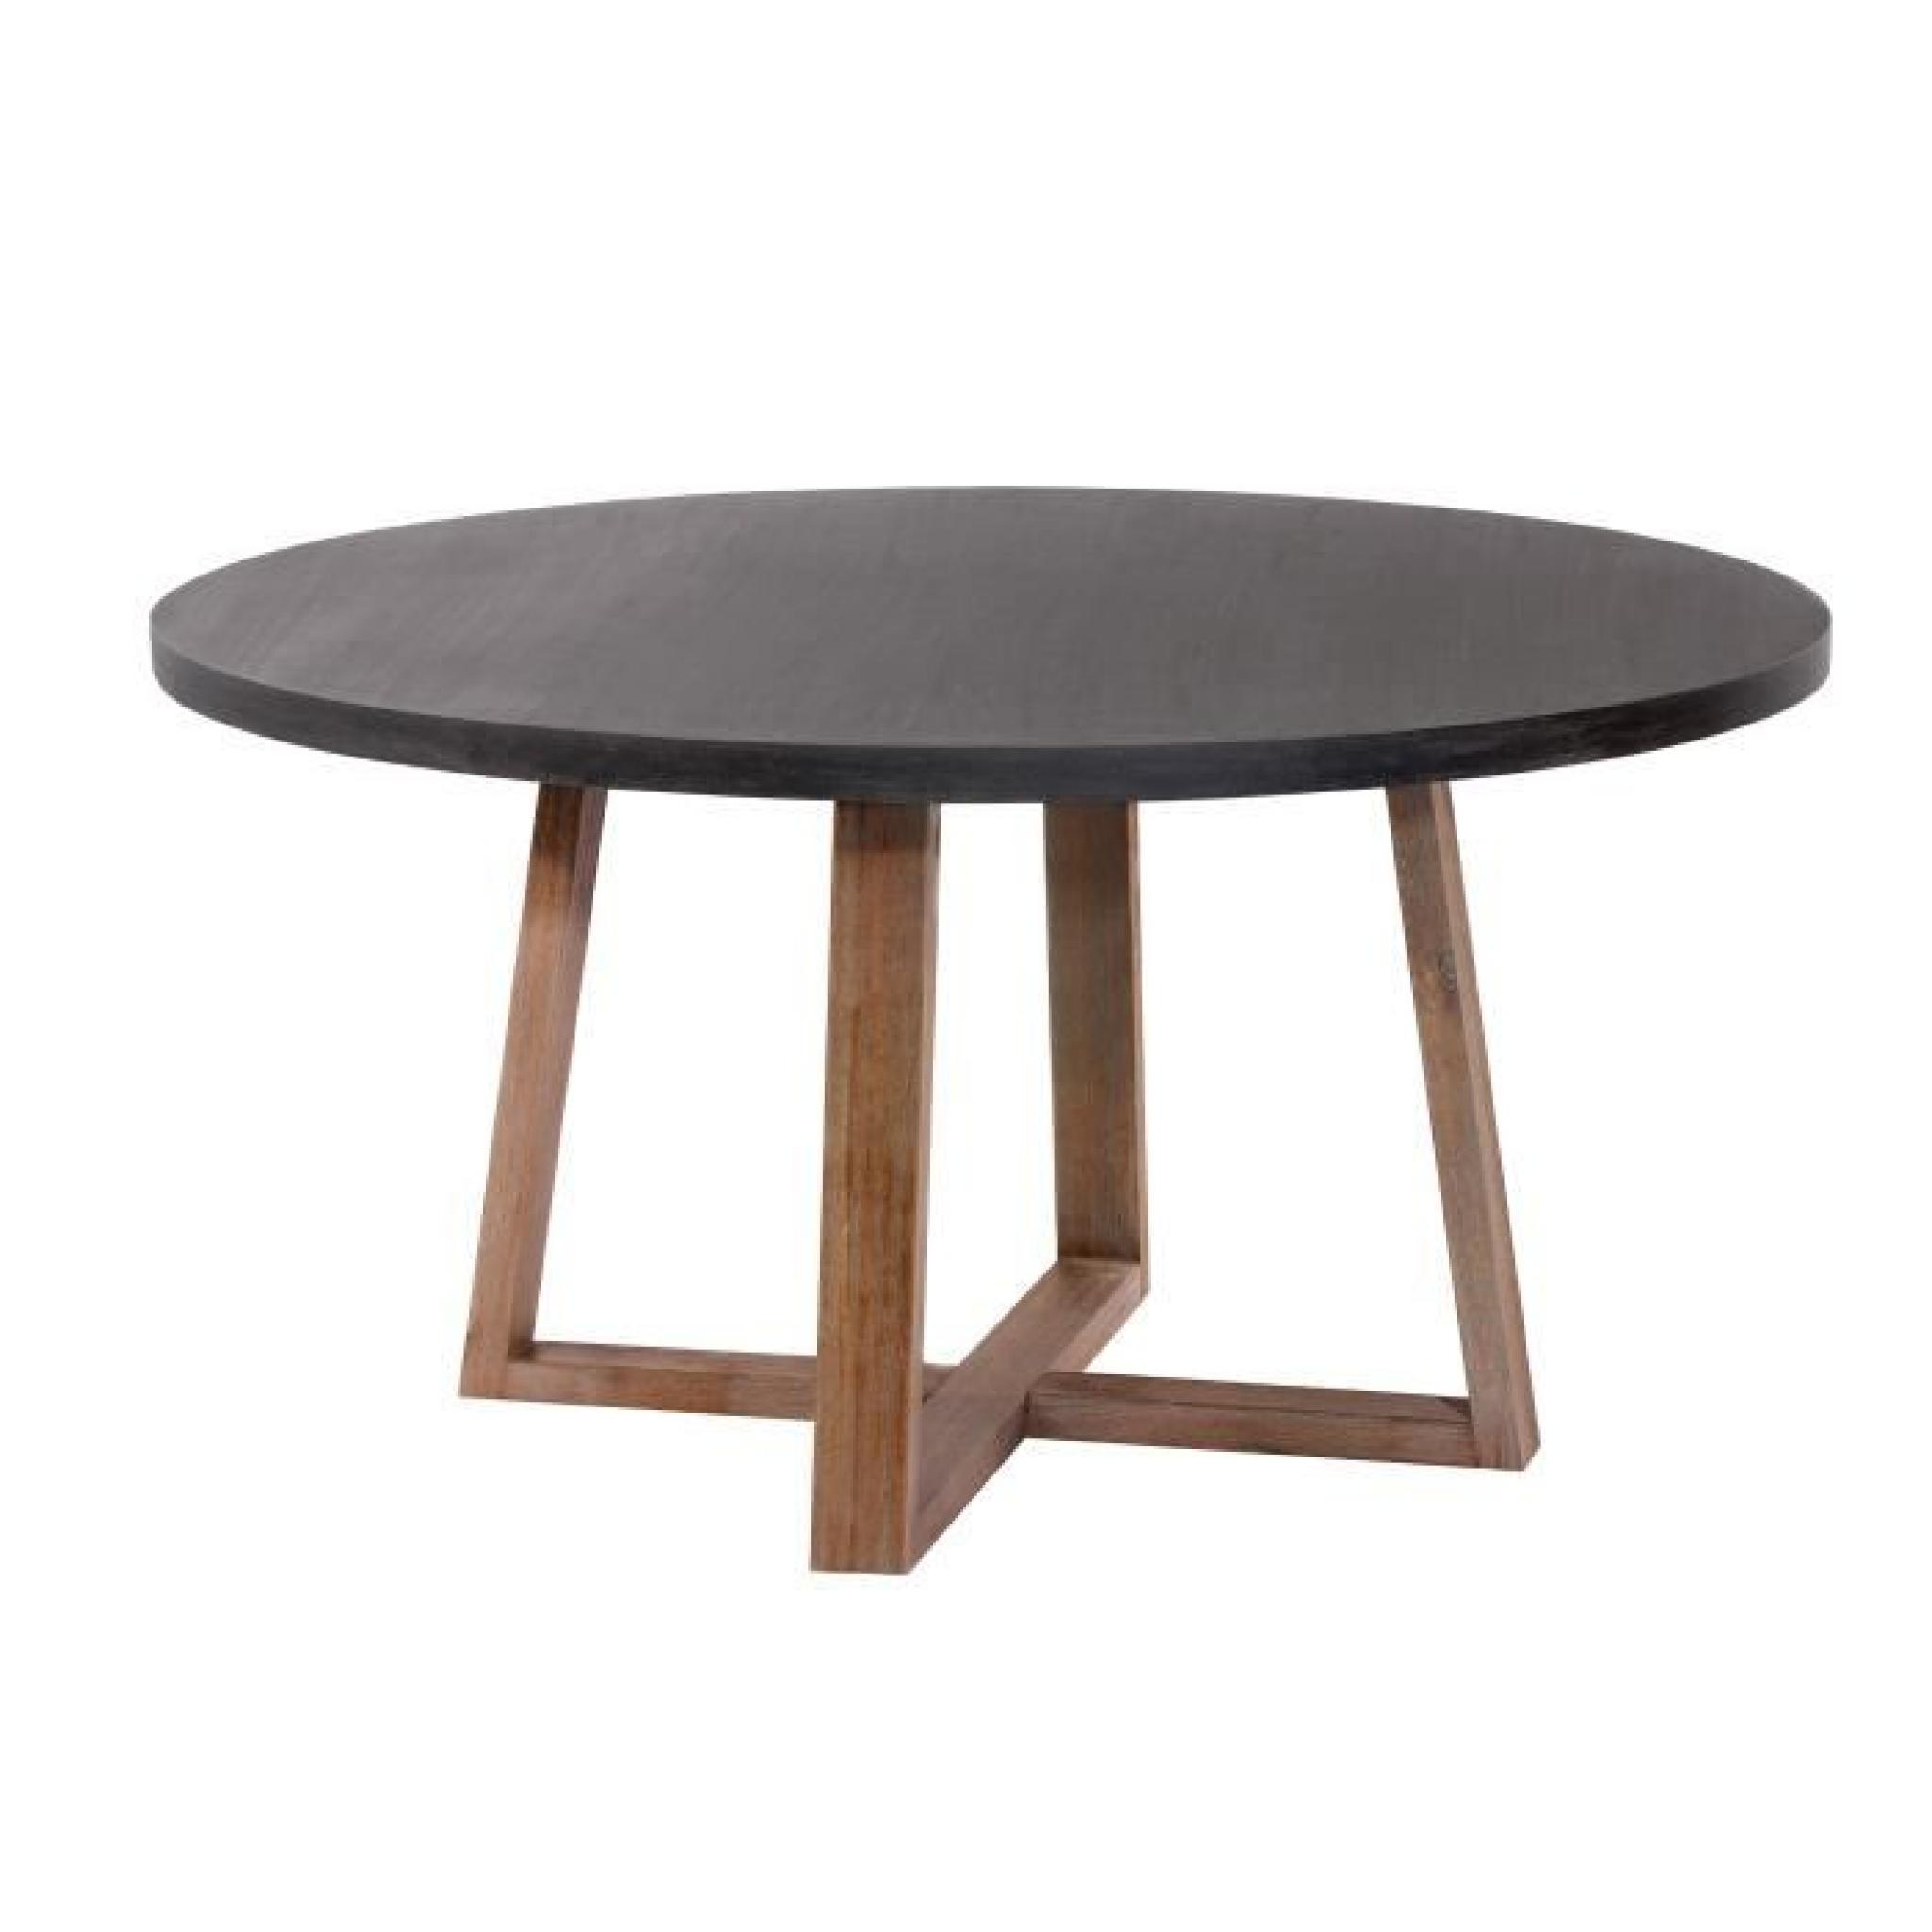 Table ronde tambora 140 cm achat vente table salle a for Table de salle a manger ronde